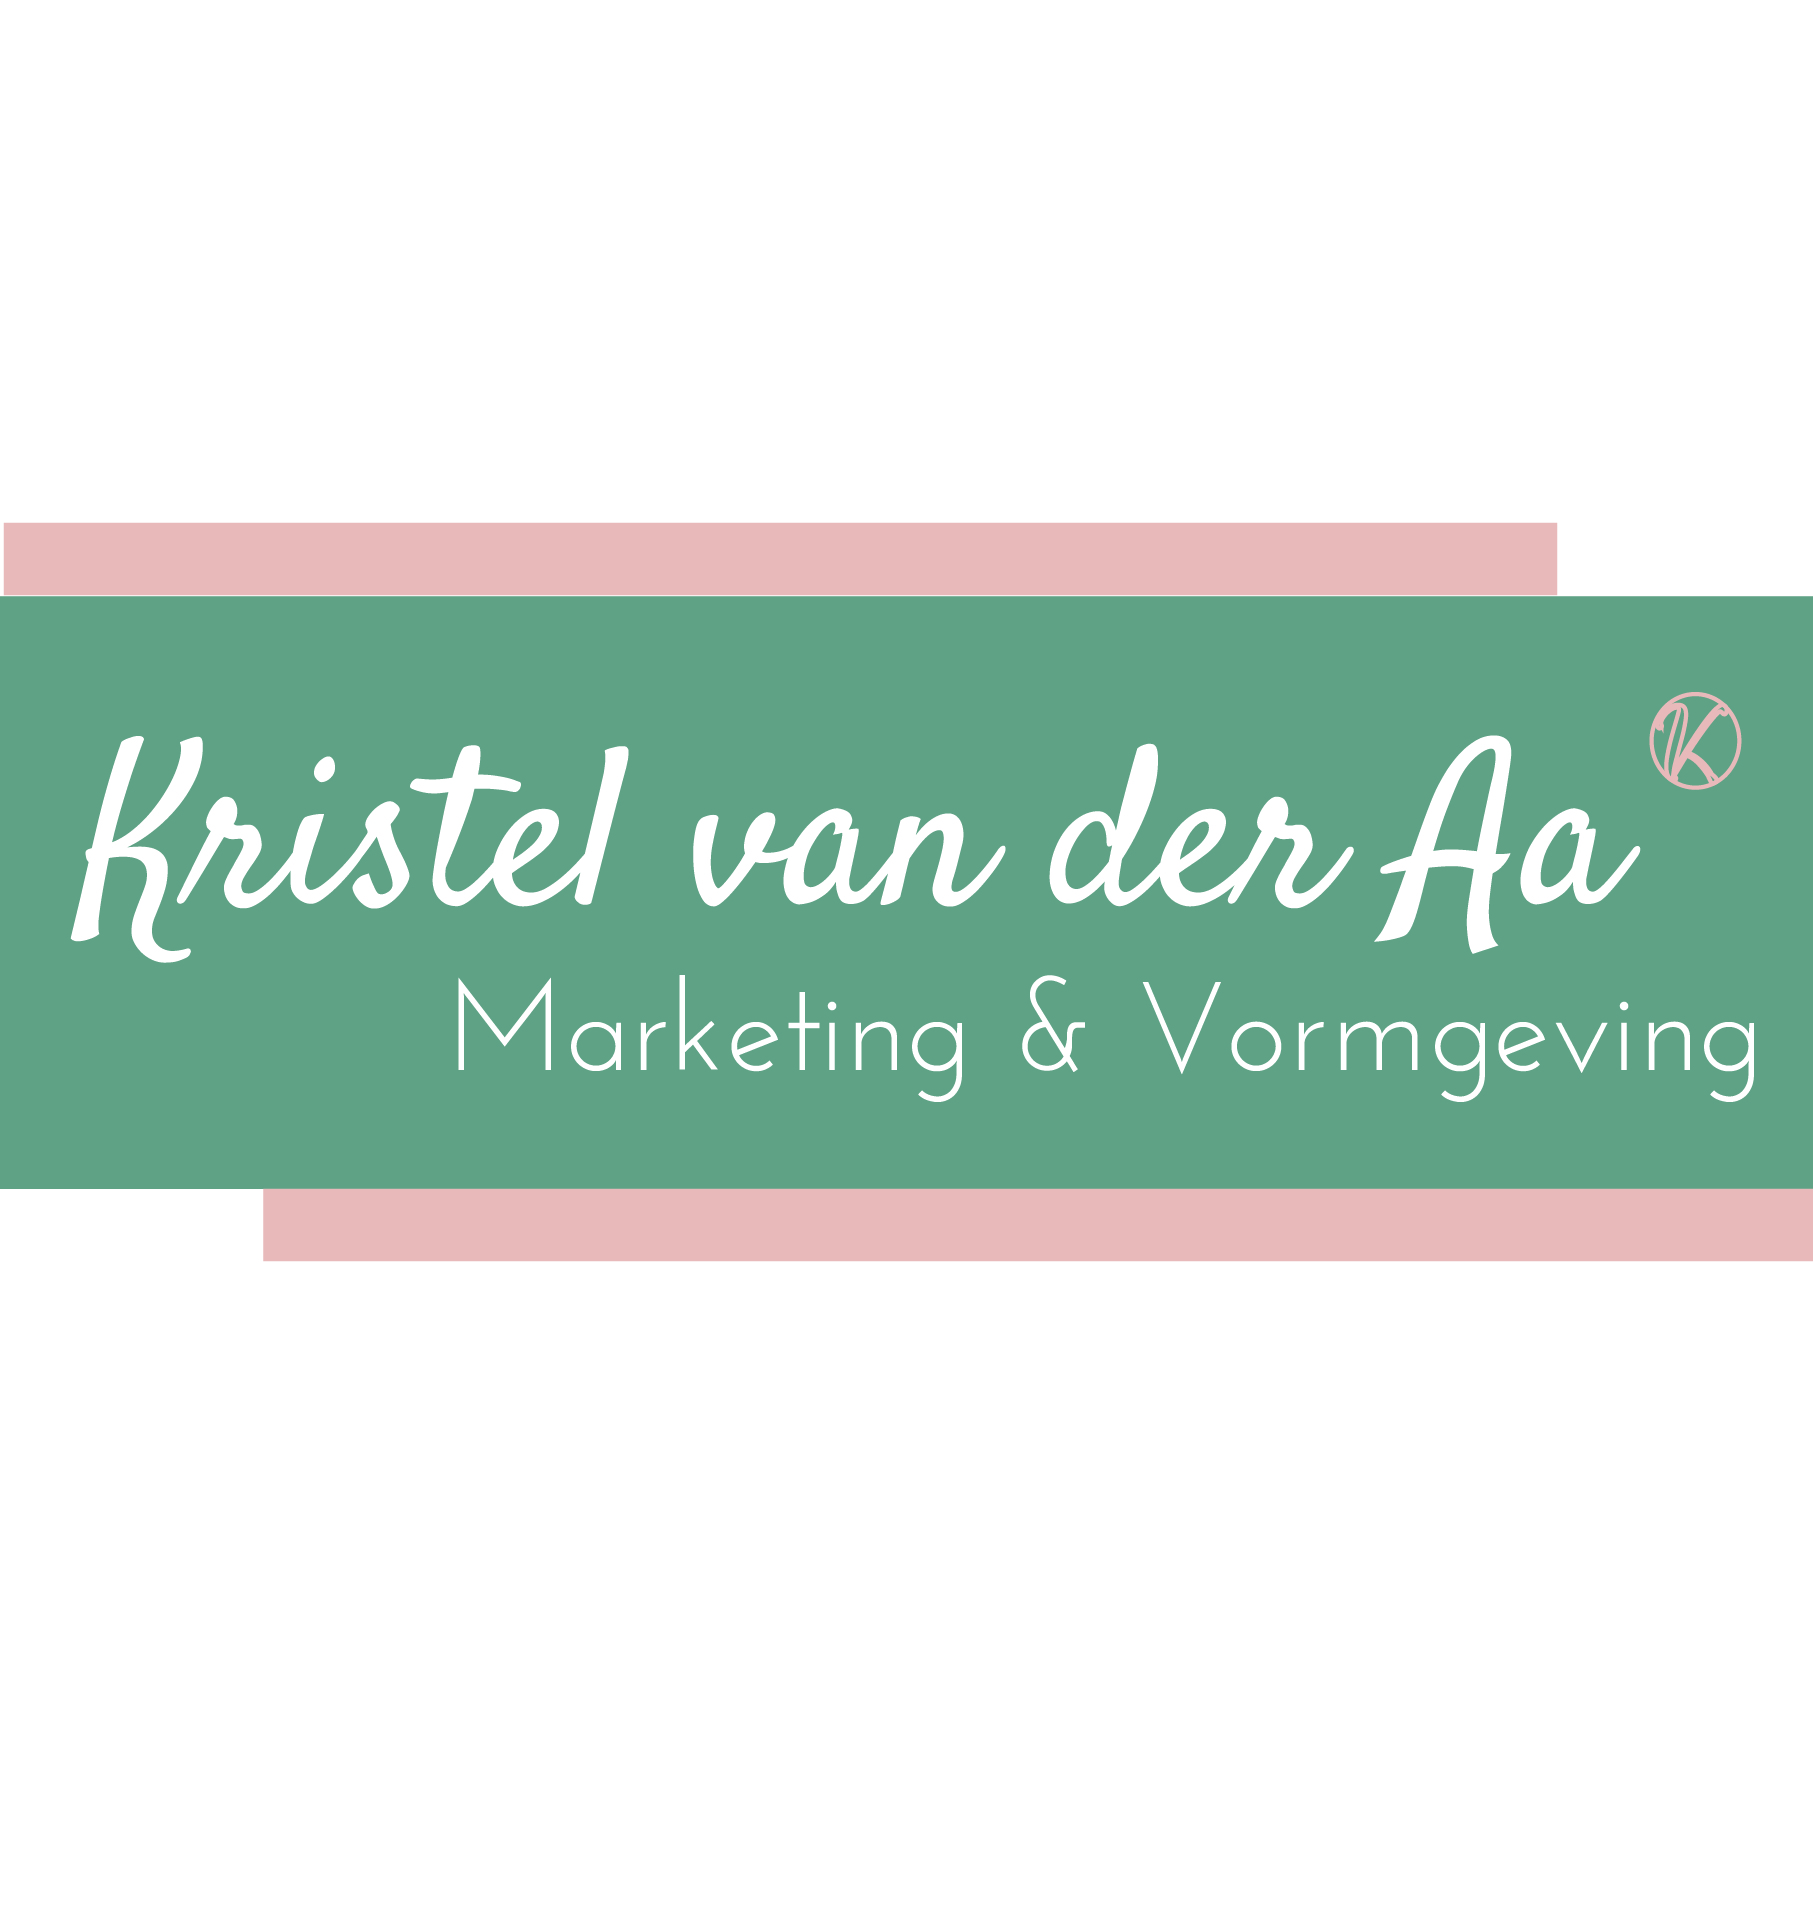 Kristel van der Aa - Marketing - Vormgeving